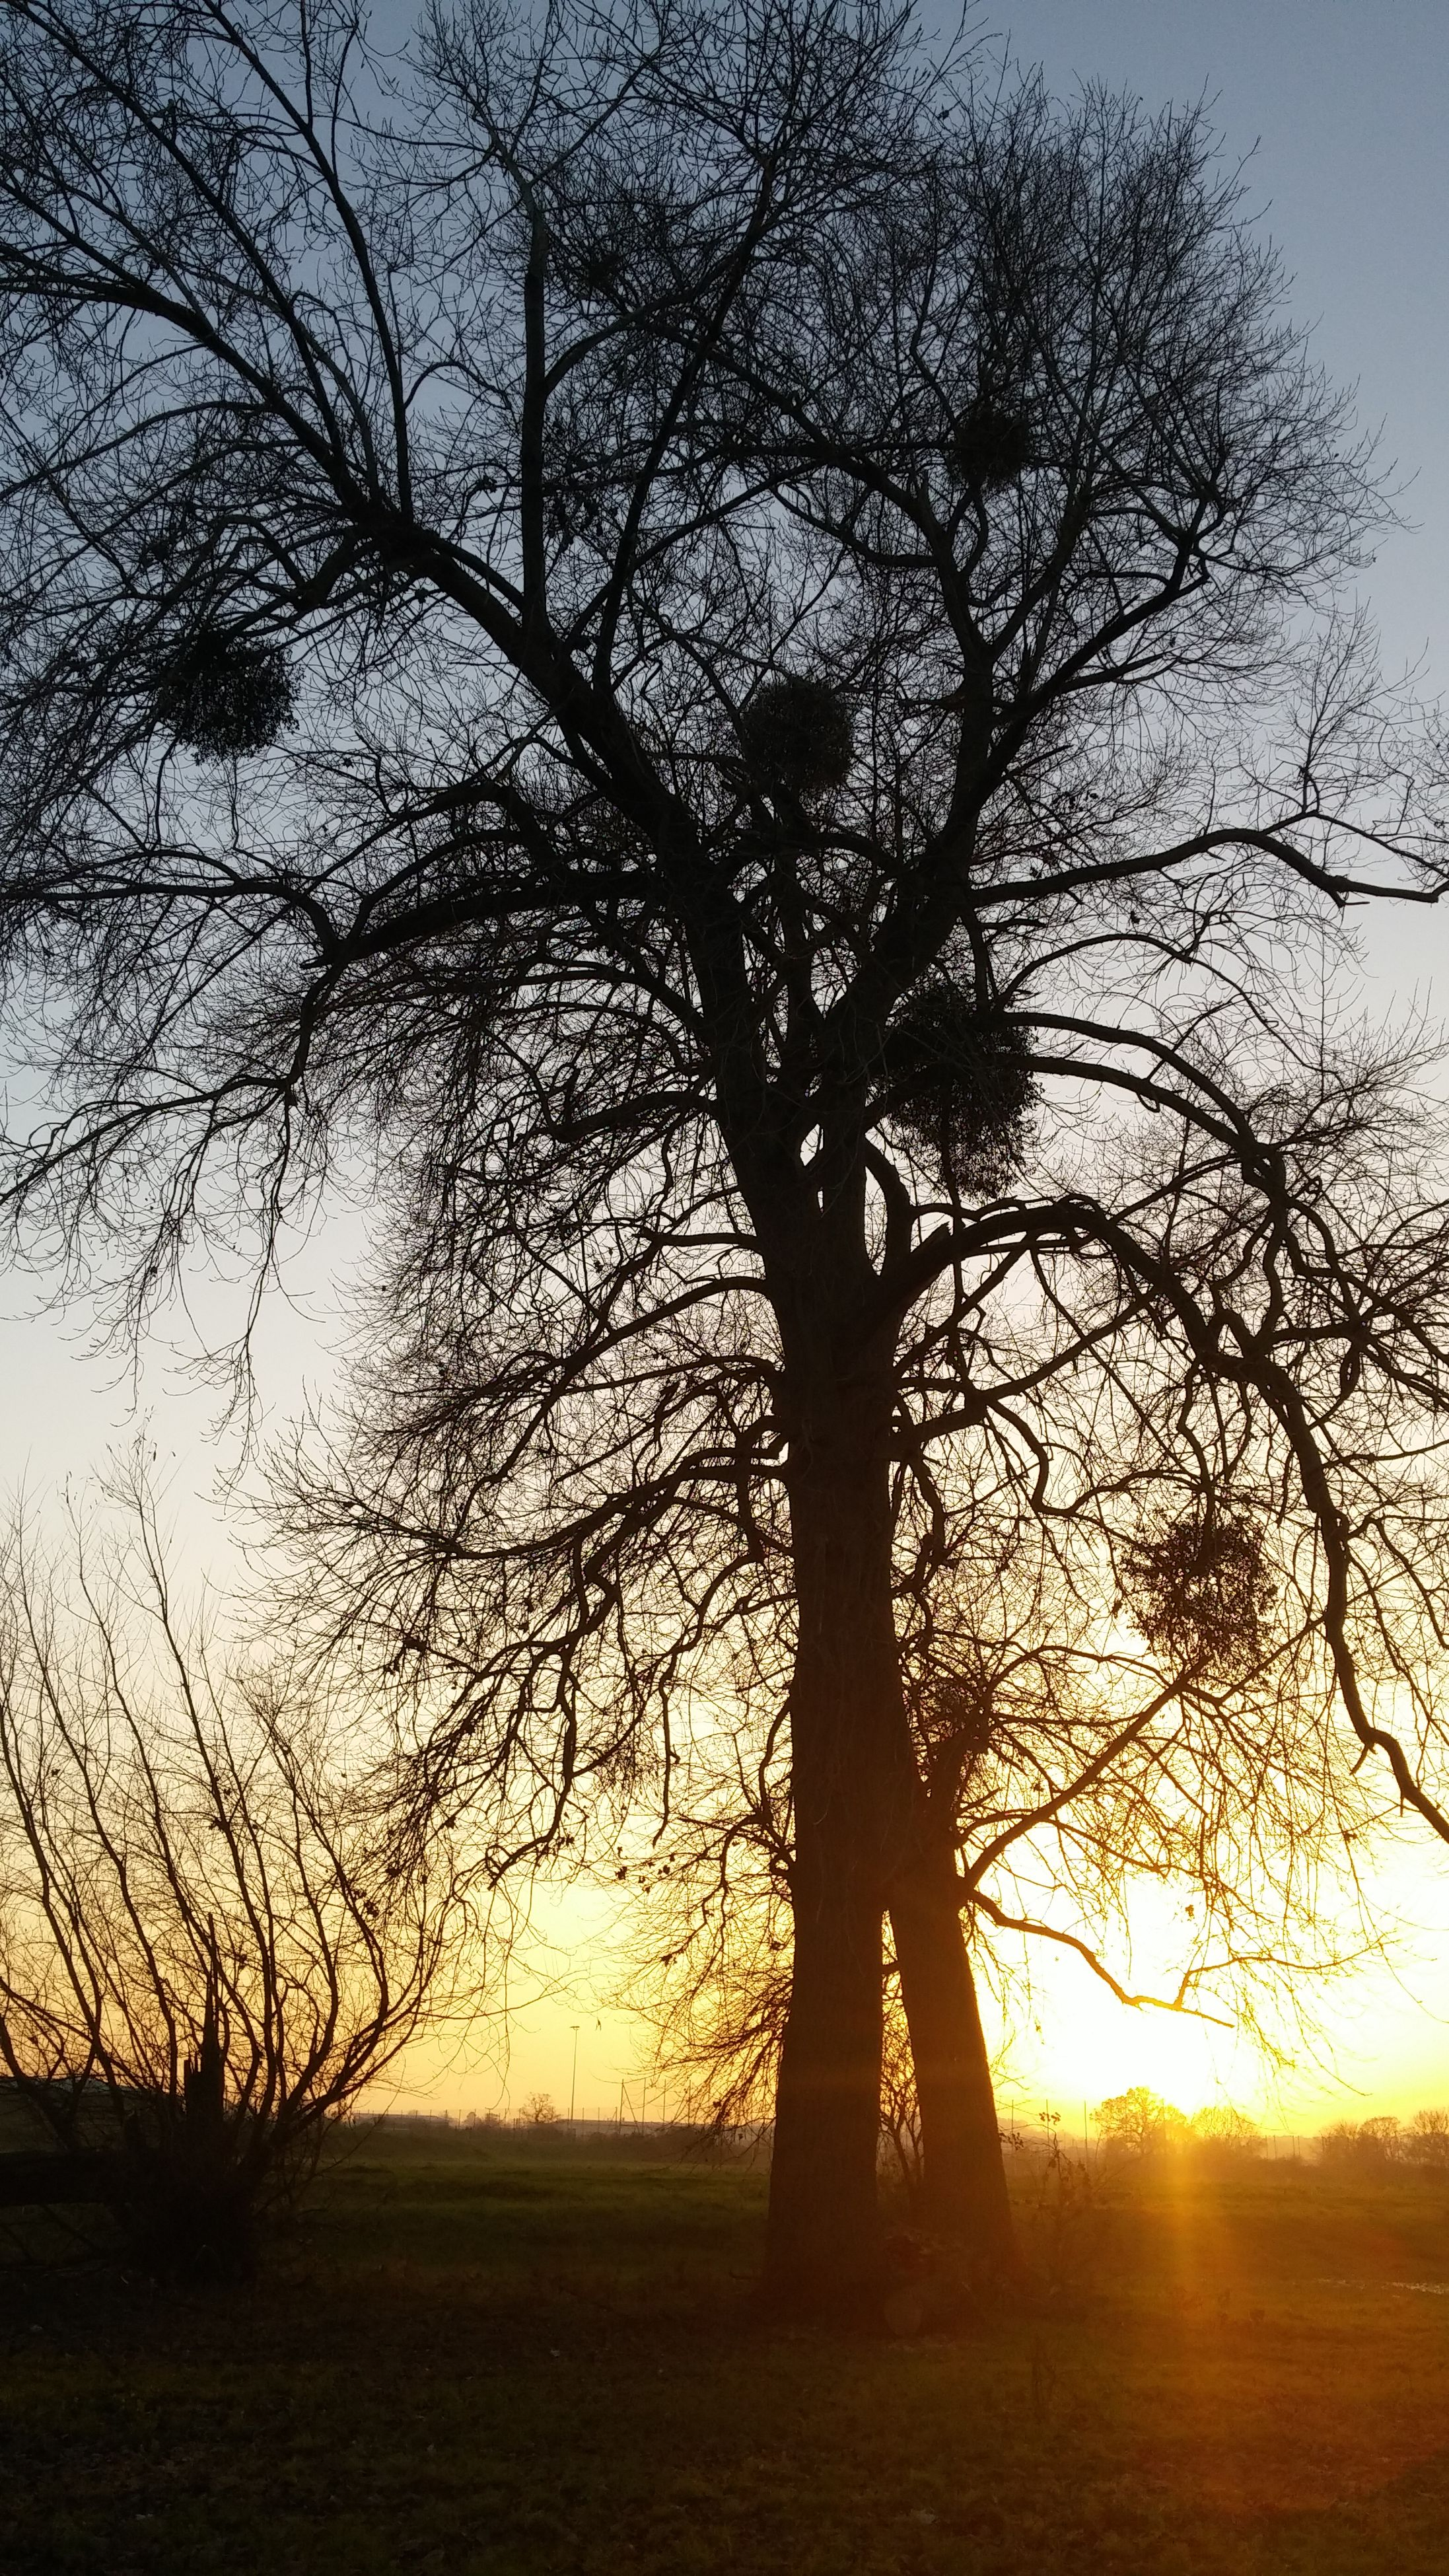 bare tree, tree, branch, silhouette, sunset, tranquility, tranquil scene, sky, water, scenics, nature, beauty in nature, tree trunk, lake, reflection, dusk, growth, no people, idyllic, outdoors